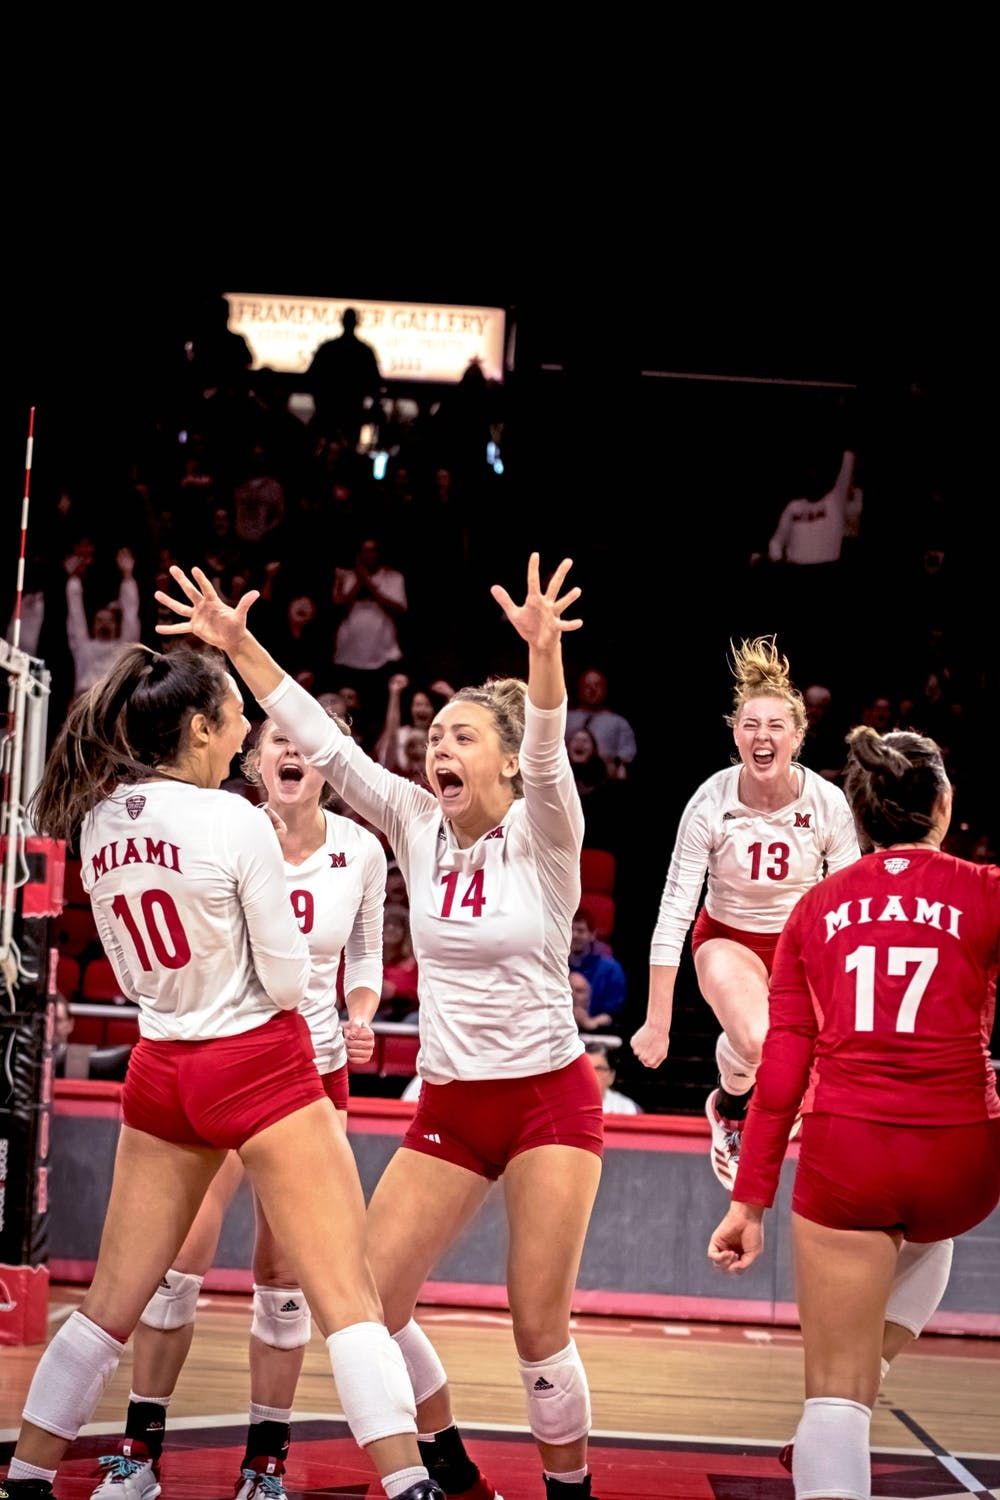 <p>The RedHawks hold a 17-11 (12-4 MAC), as they head into the National Invitational Volleyball Tournament.</p><p><br/><br/><br/><br/><br/><br/></p>